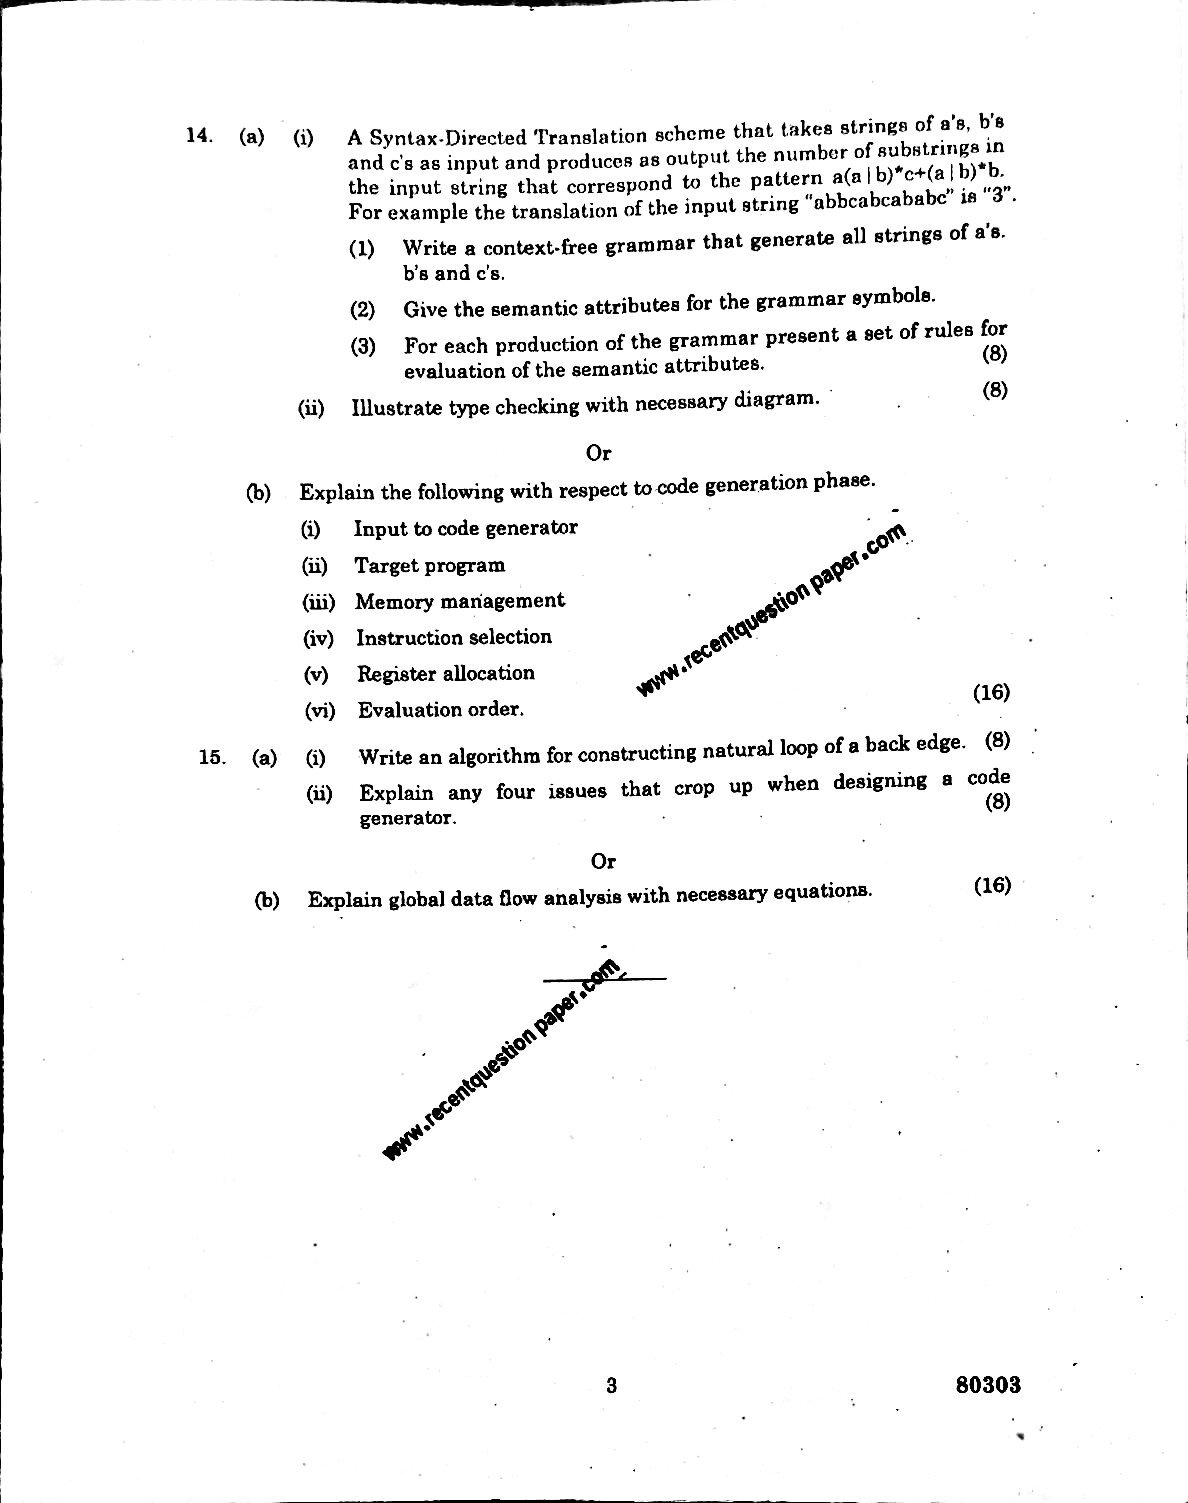 Anna University Questions Archives - Page 42 of 72 - Recent